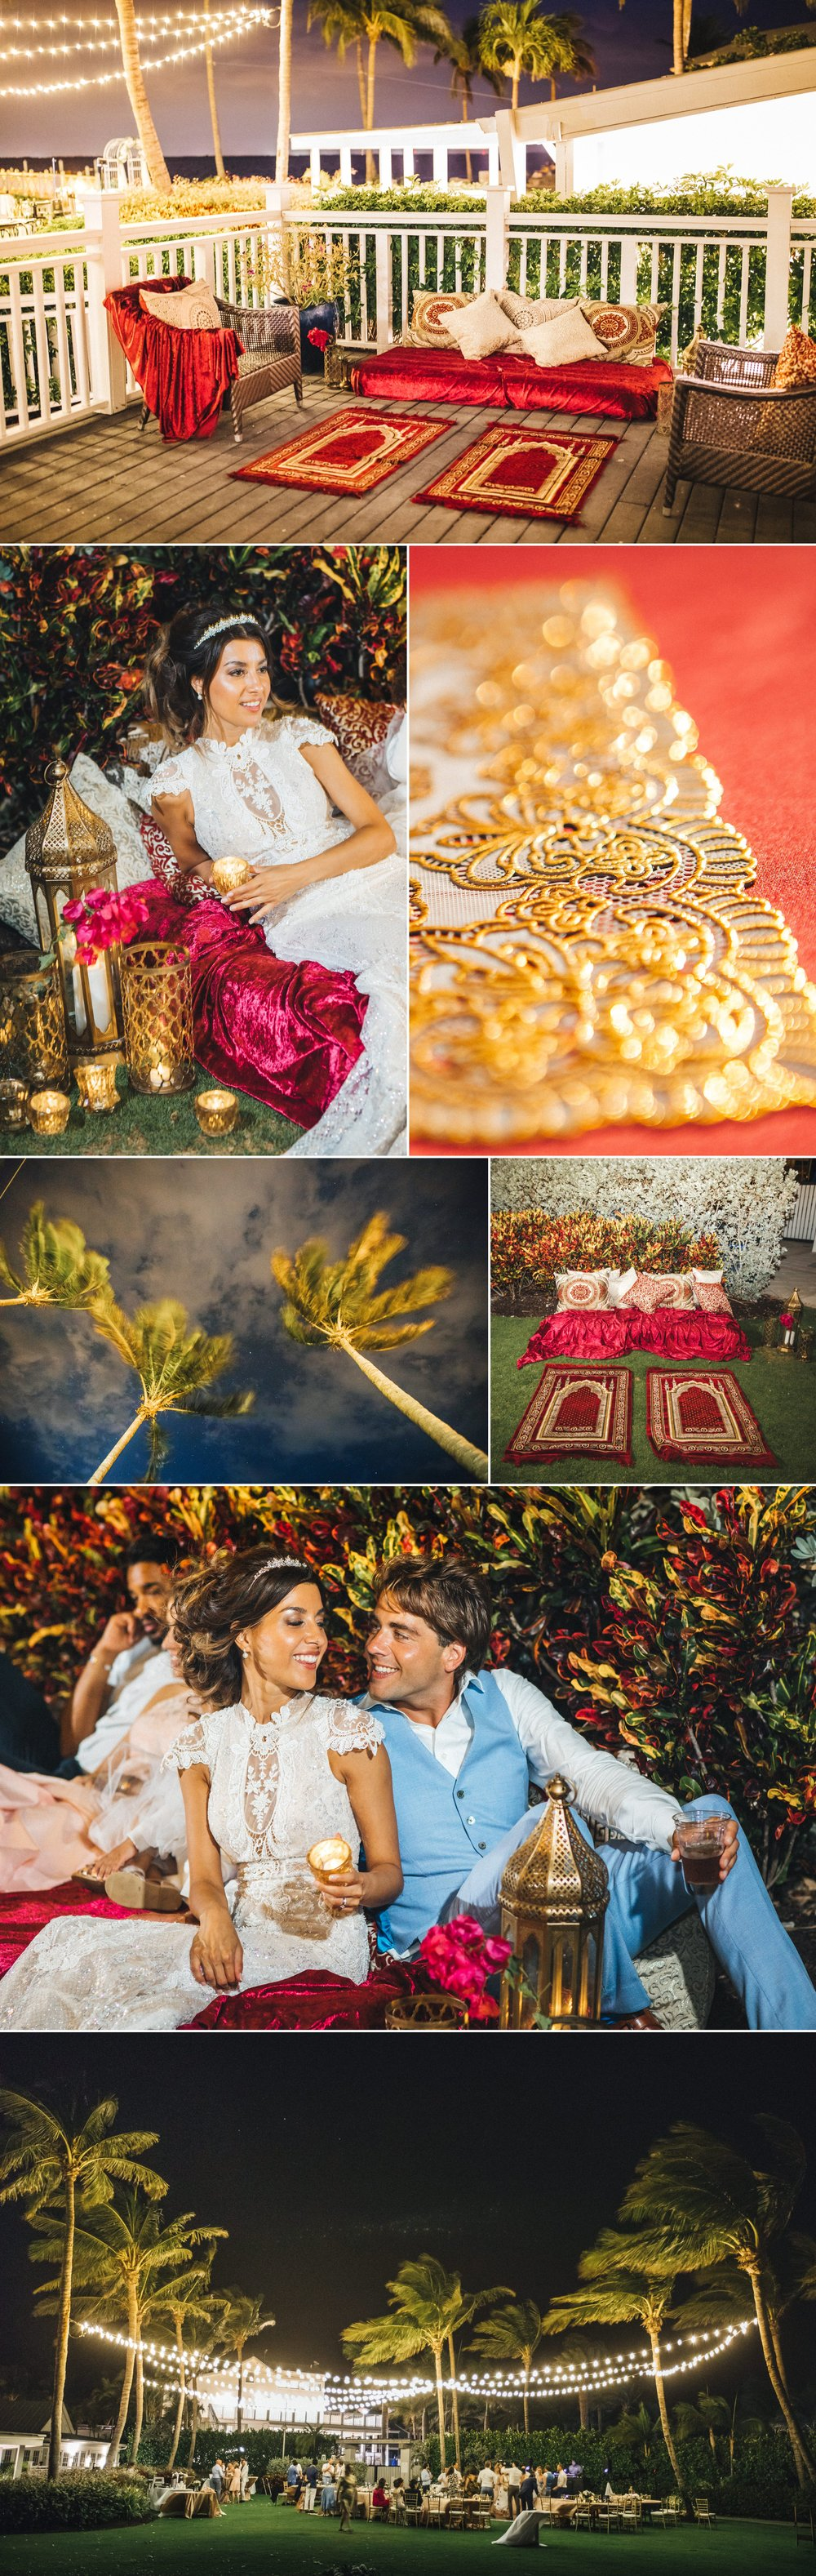 Destination Wedding Photographer - Captiva South Seas Resort Dutch European Luxury Wedding-ShainaDeCiryan.com17.jpg